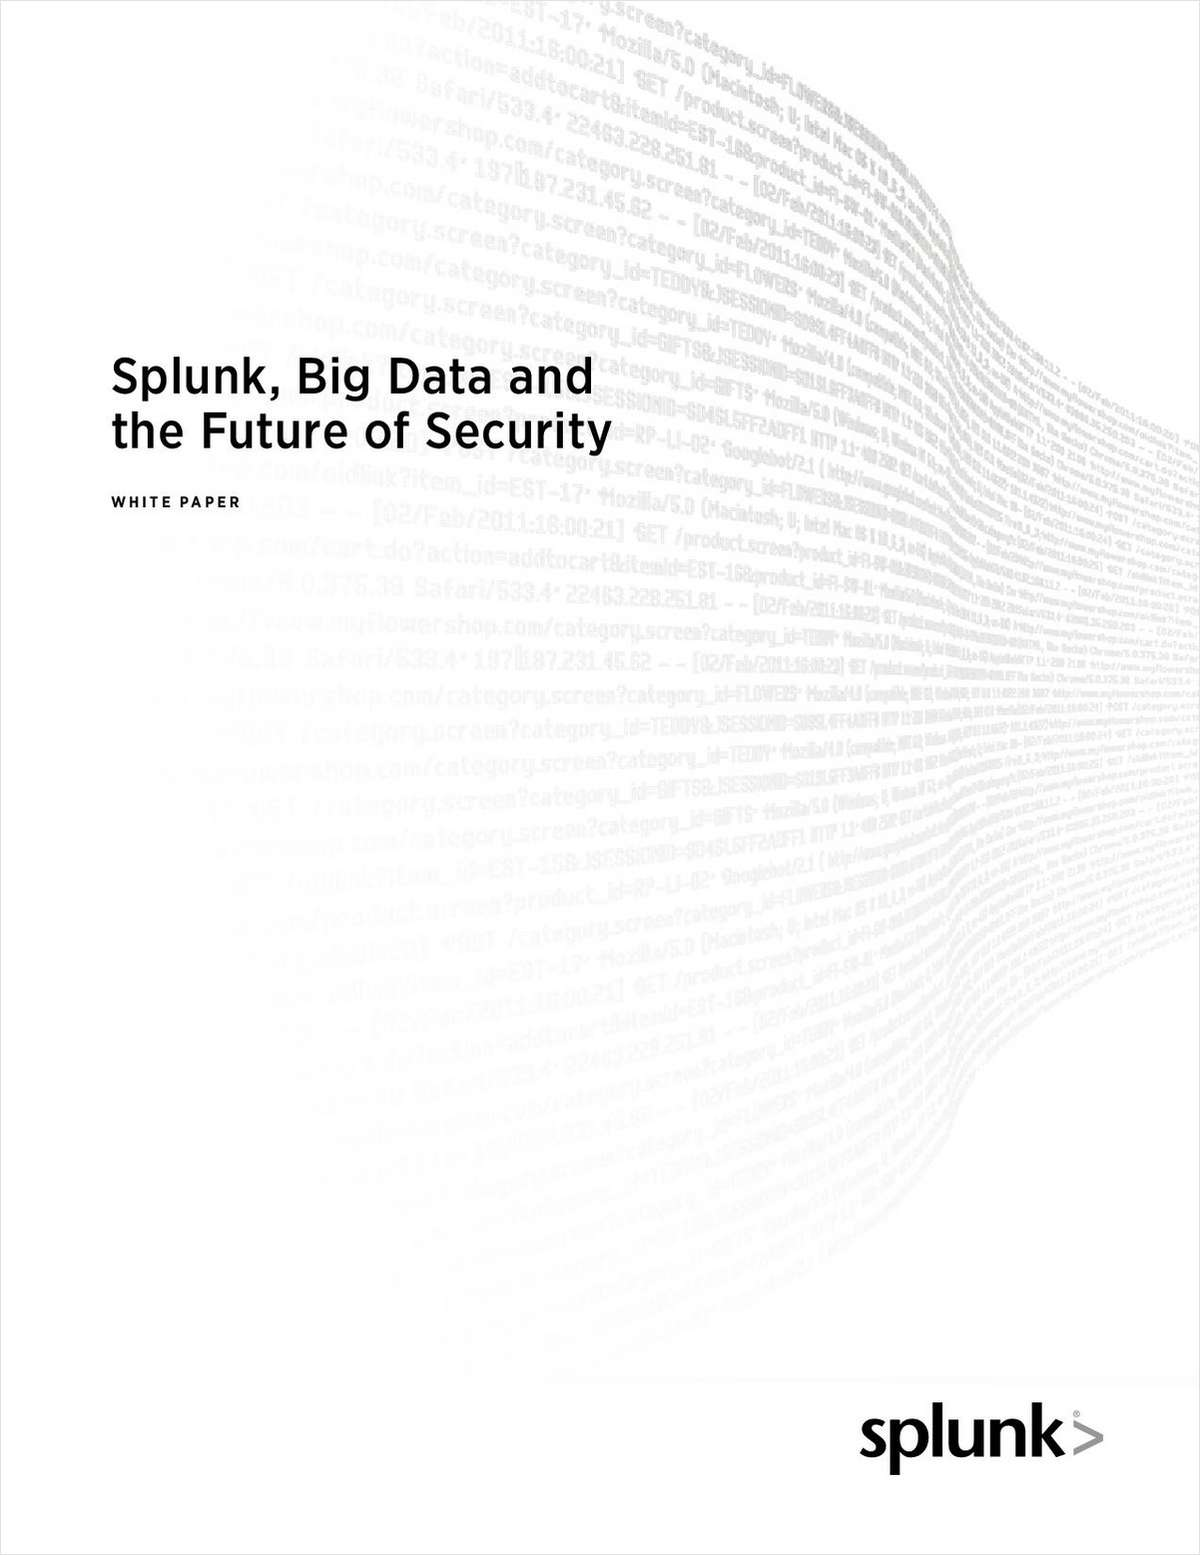 Big Data and the Future of Security